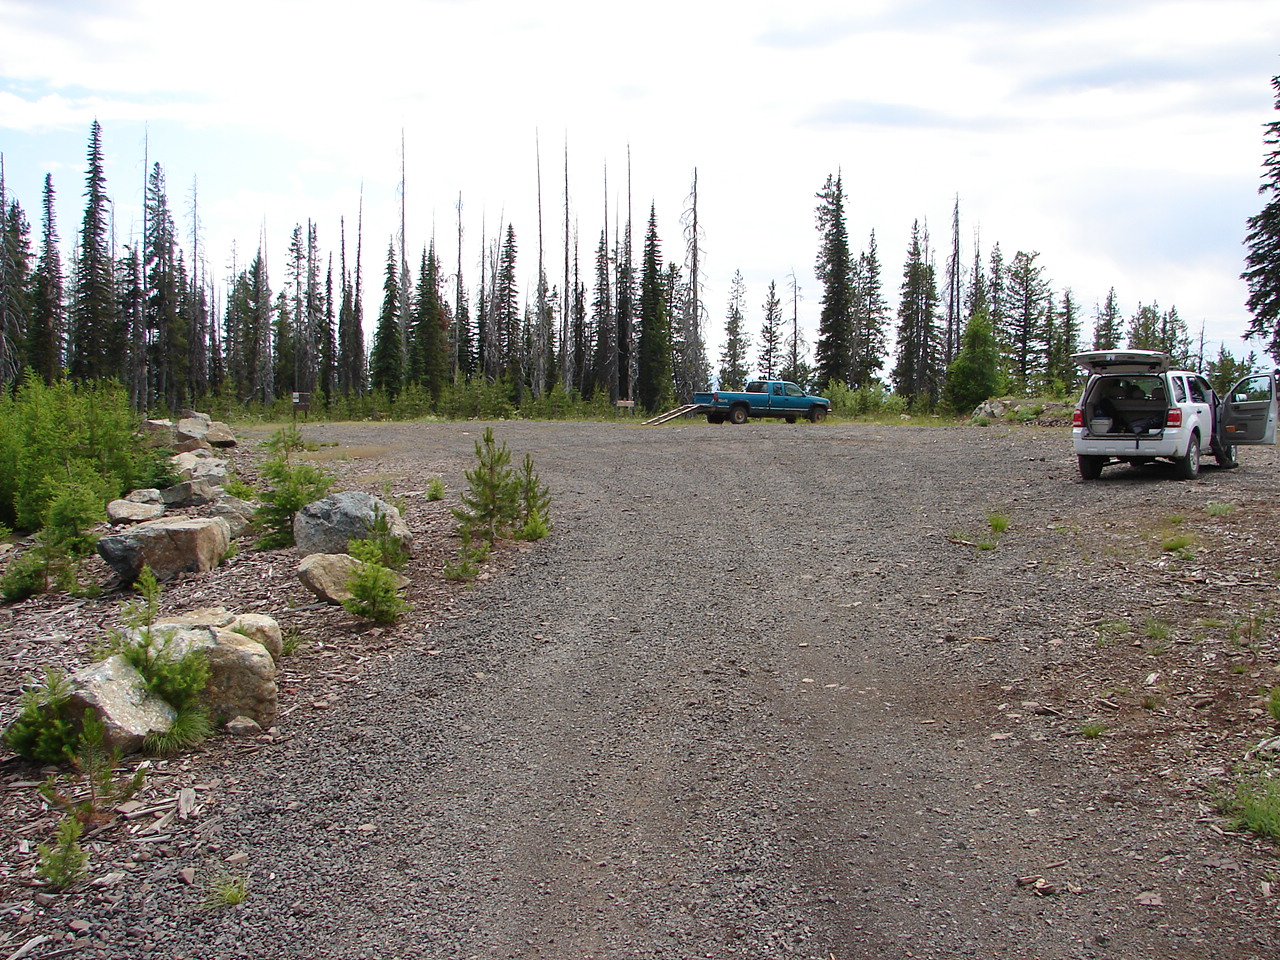 Large gravel parking area for a hiker trail with small pine trees